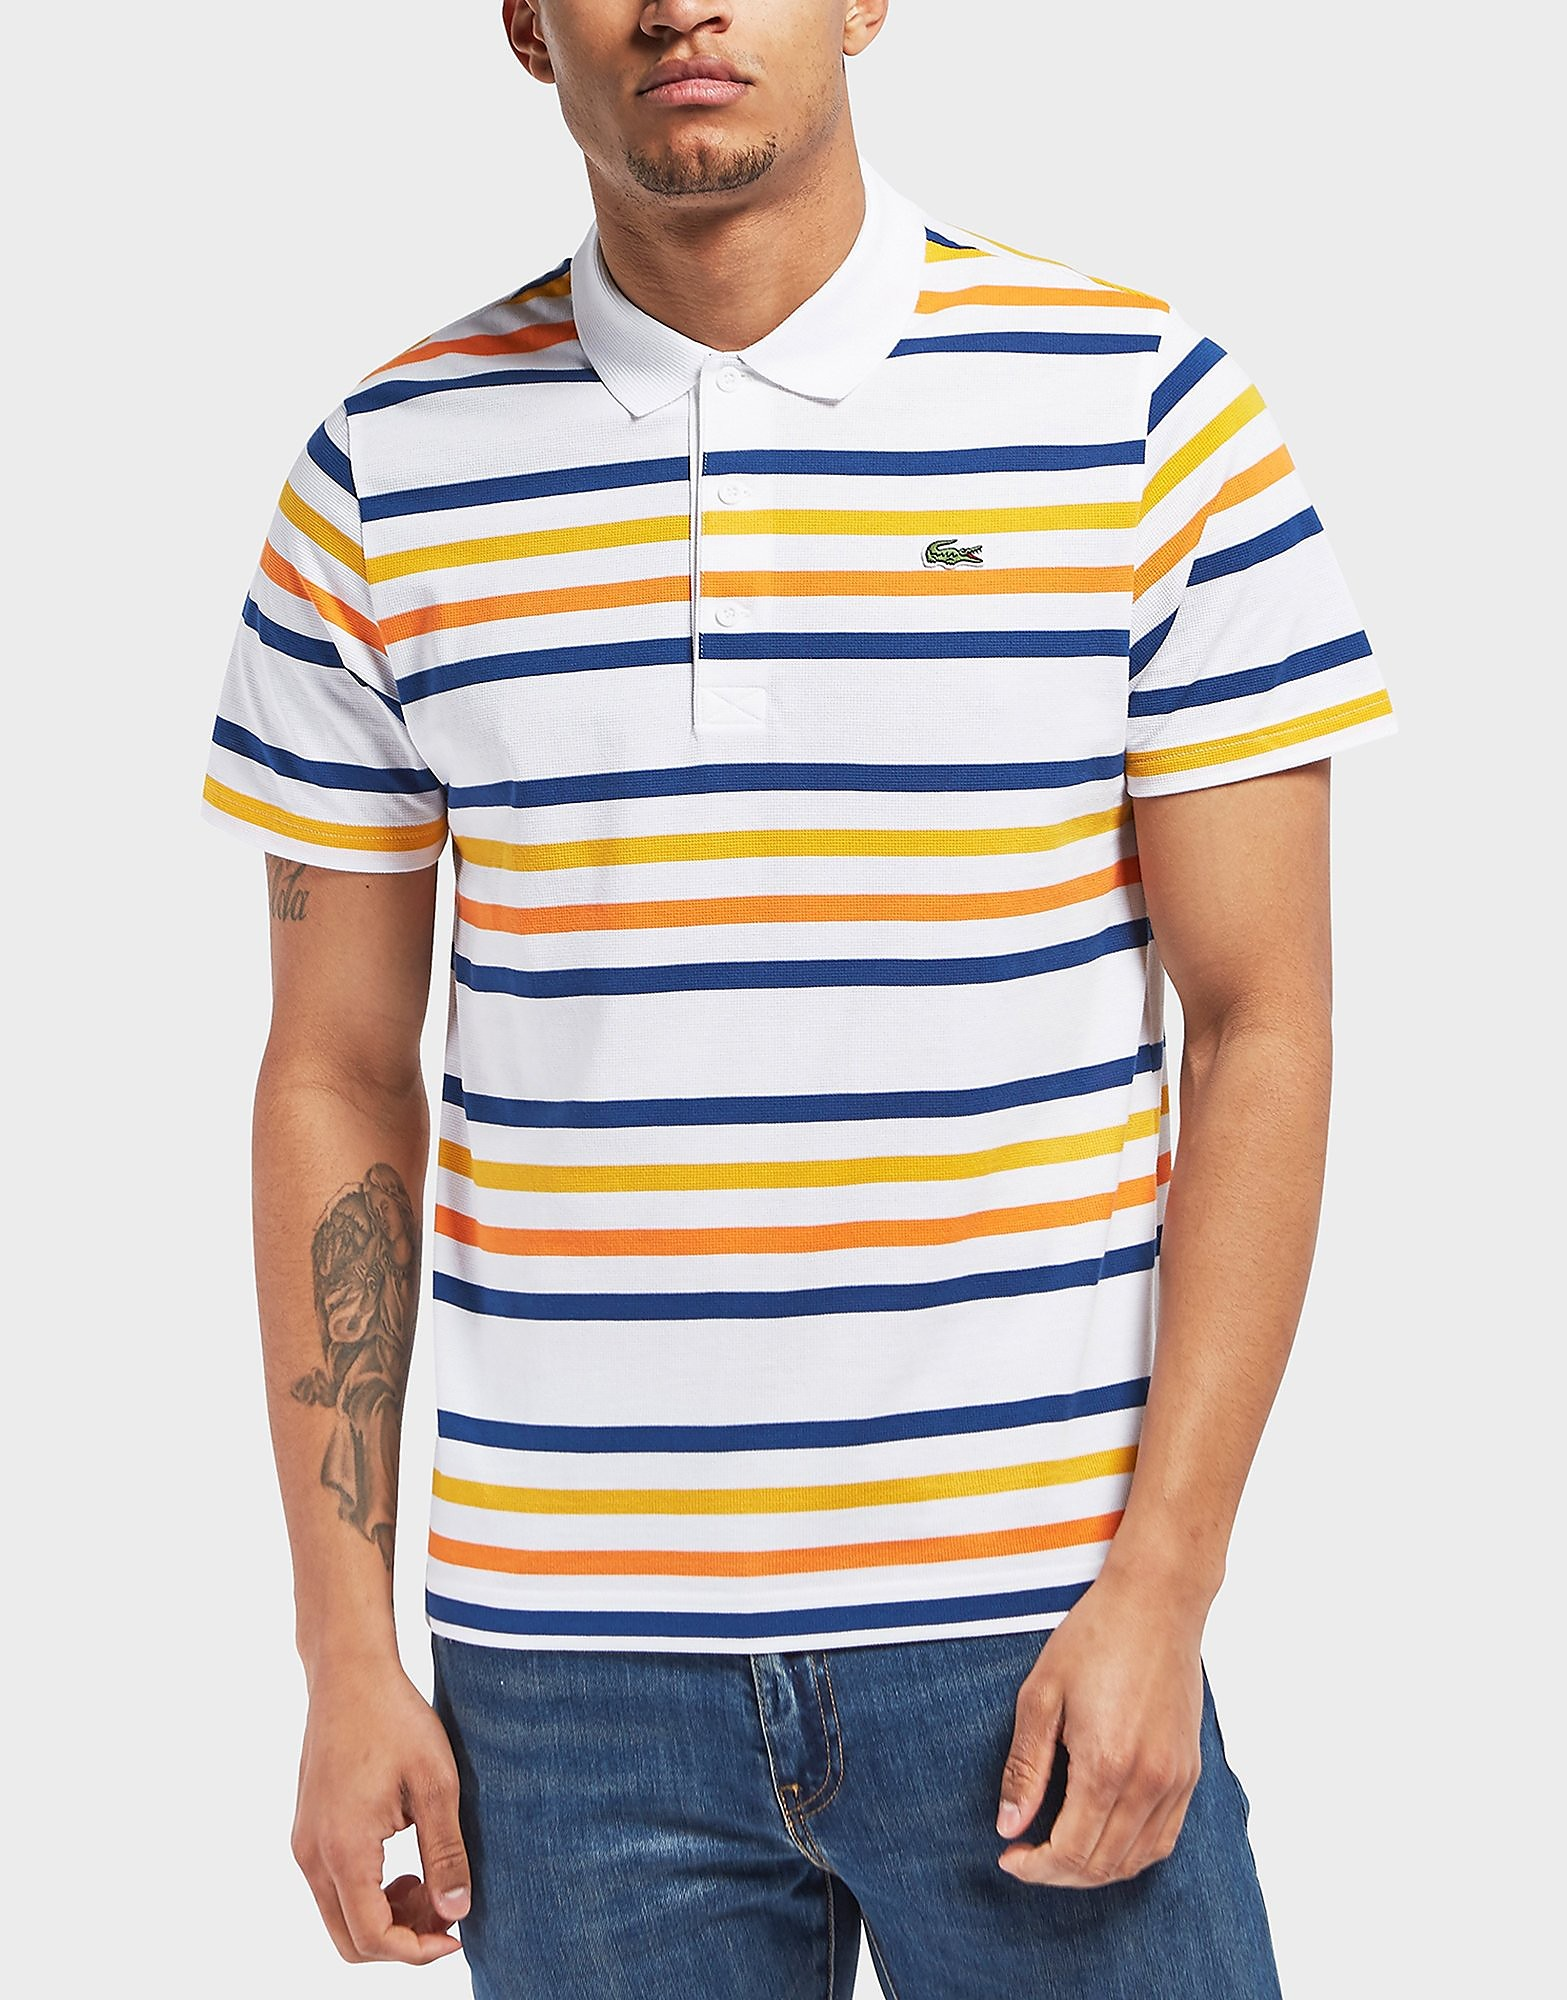 Lacoste Stripe Short Sleeve Polo Shirt